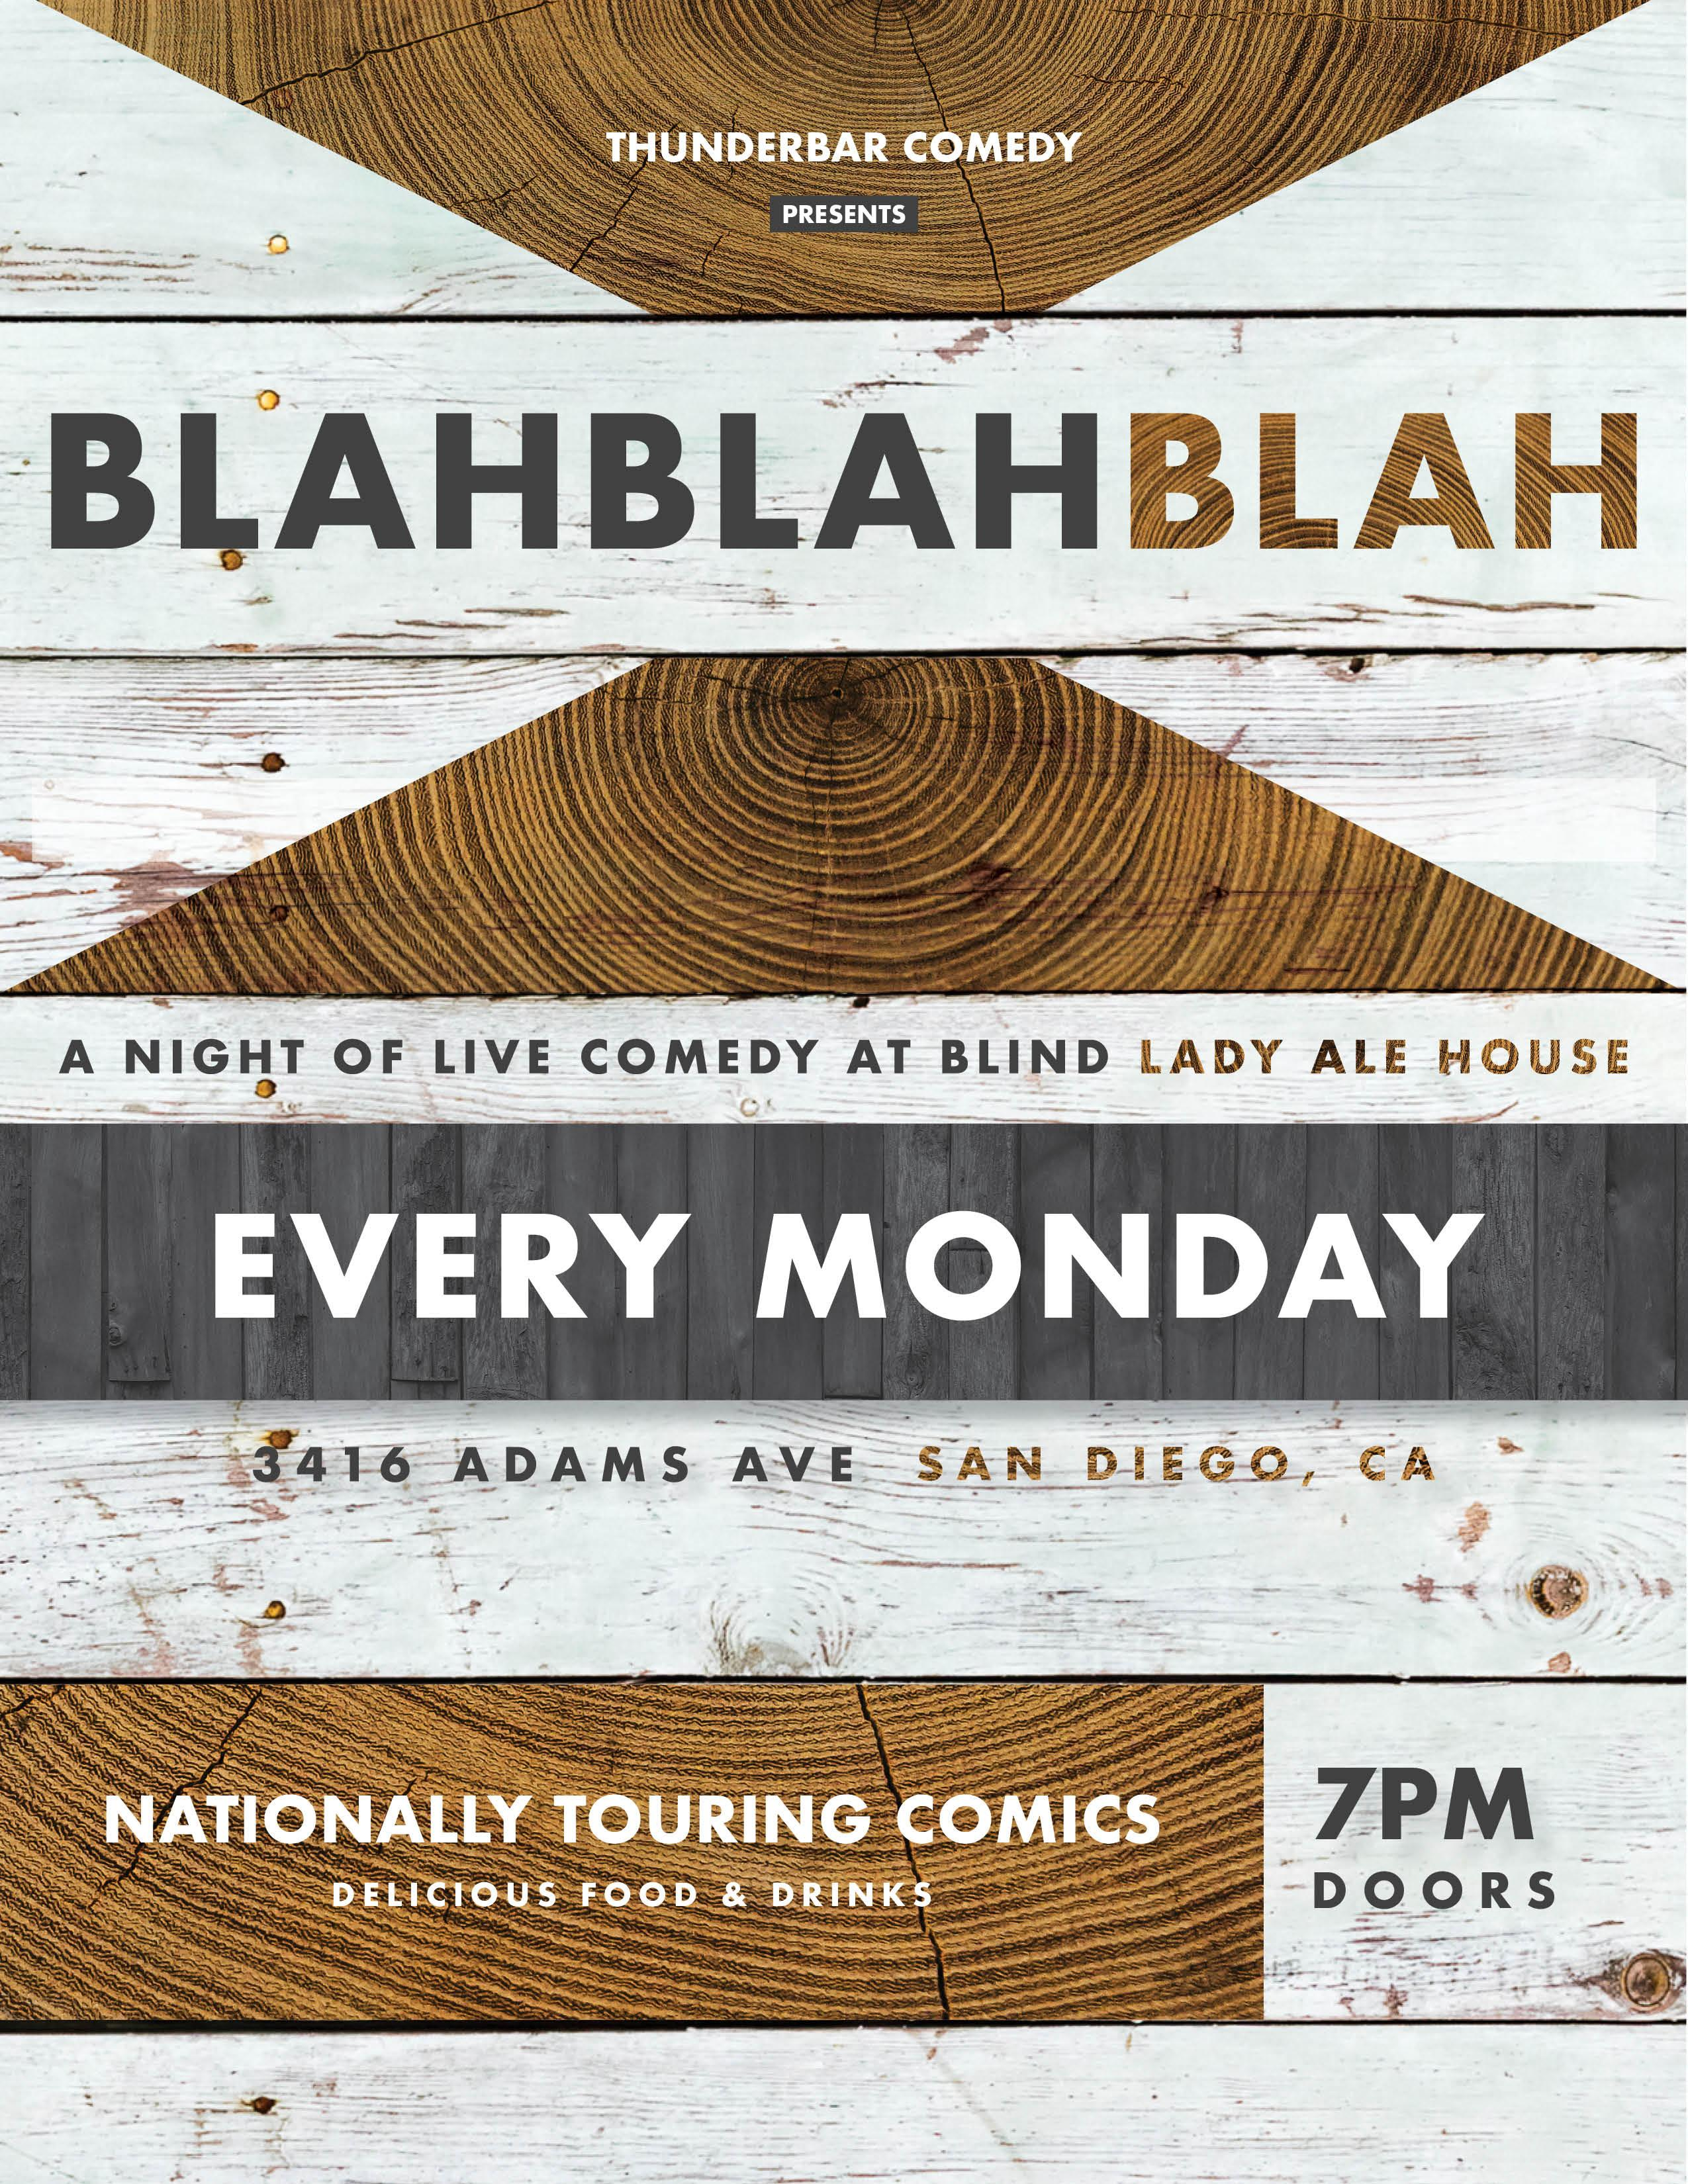 BLAH BLAH BLAH: A Night of Live Comedy at Blind Lady Ale House